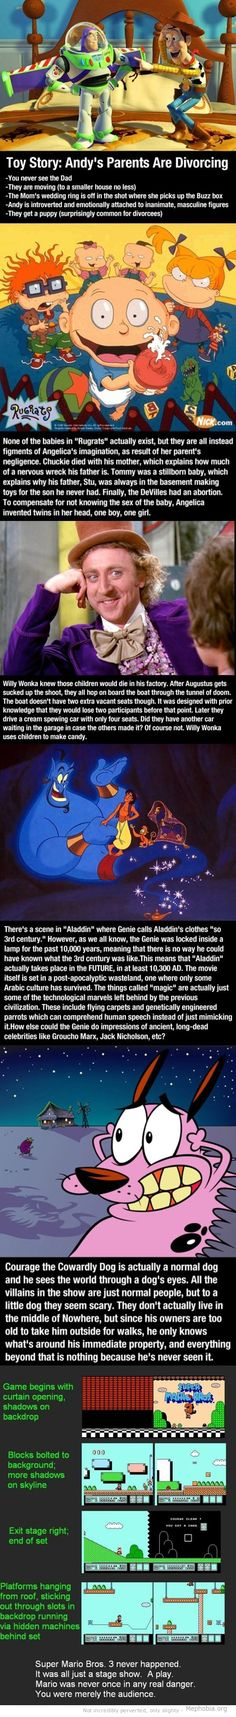 I know not all of these are Disney but I found the Aladdin one an interesting little twist